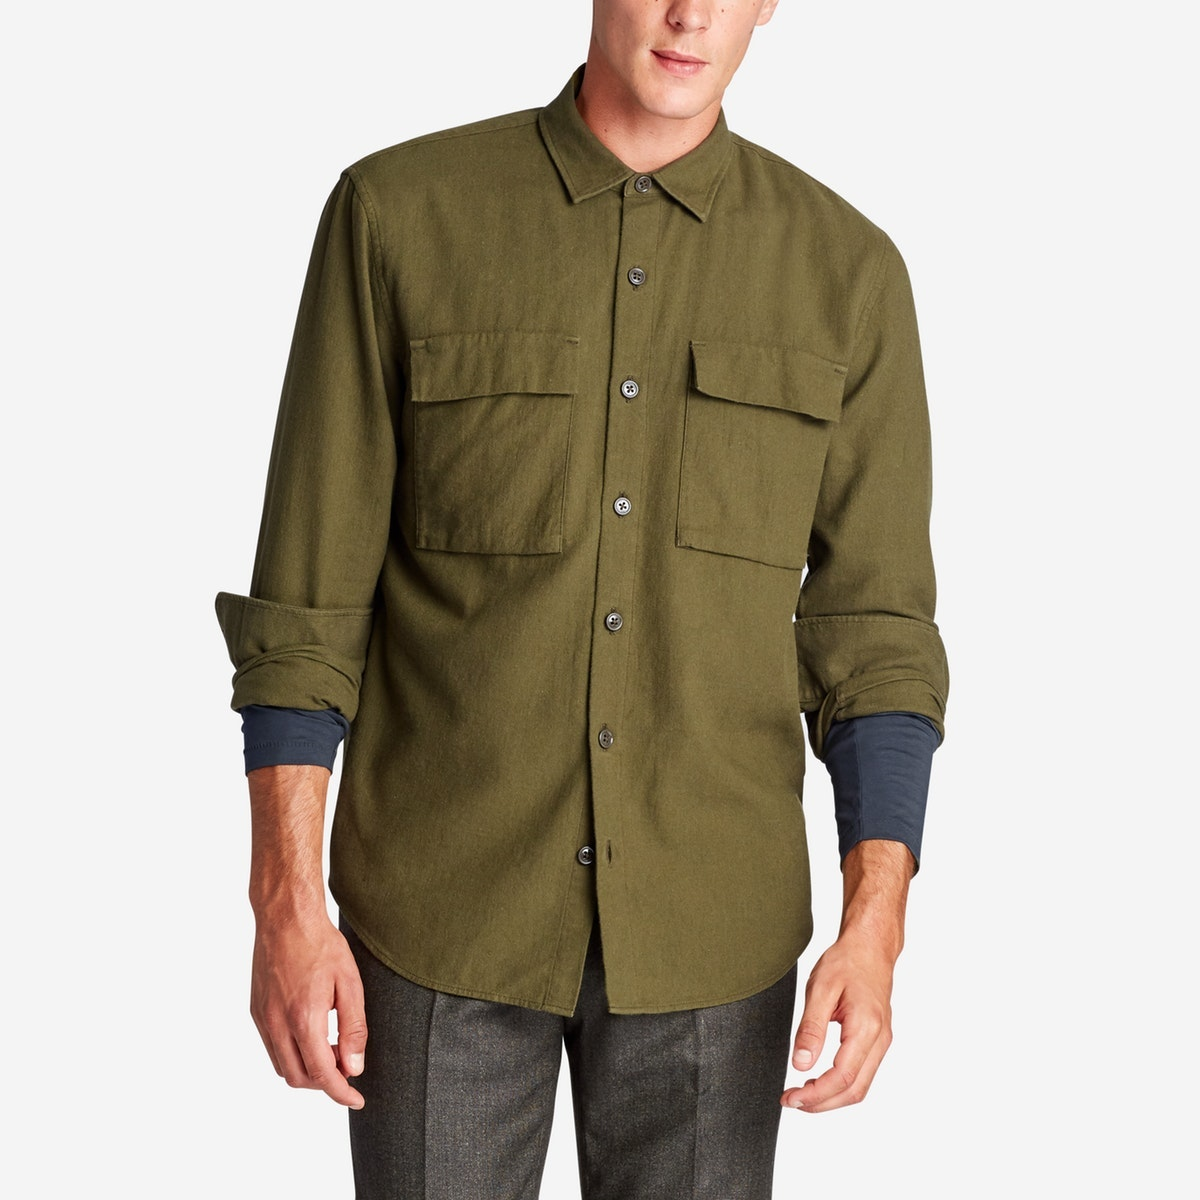 The Overshirt